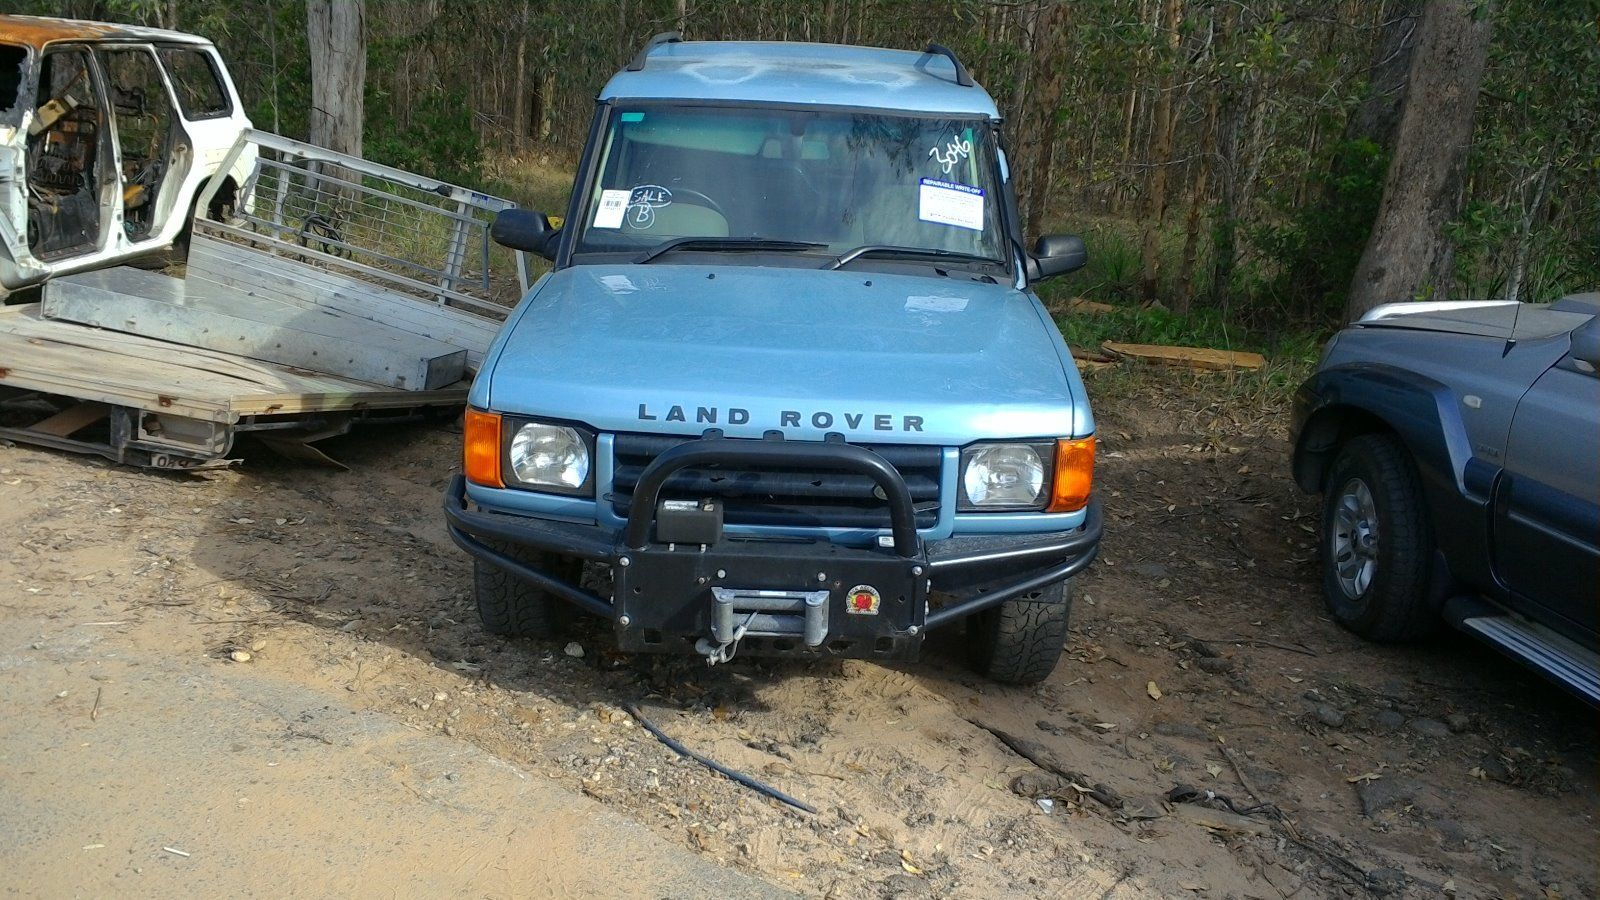 rover watch road tv offroad youtube extreme off land discovery parts landrover program